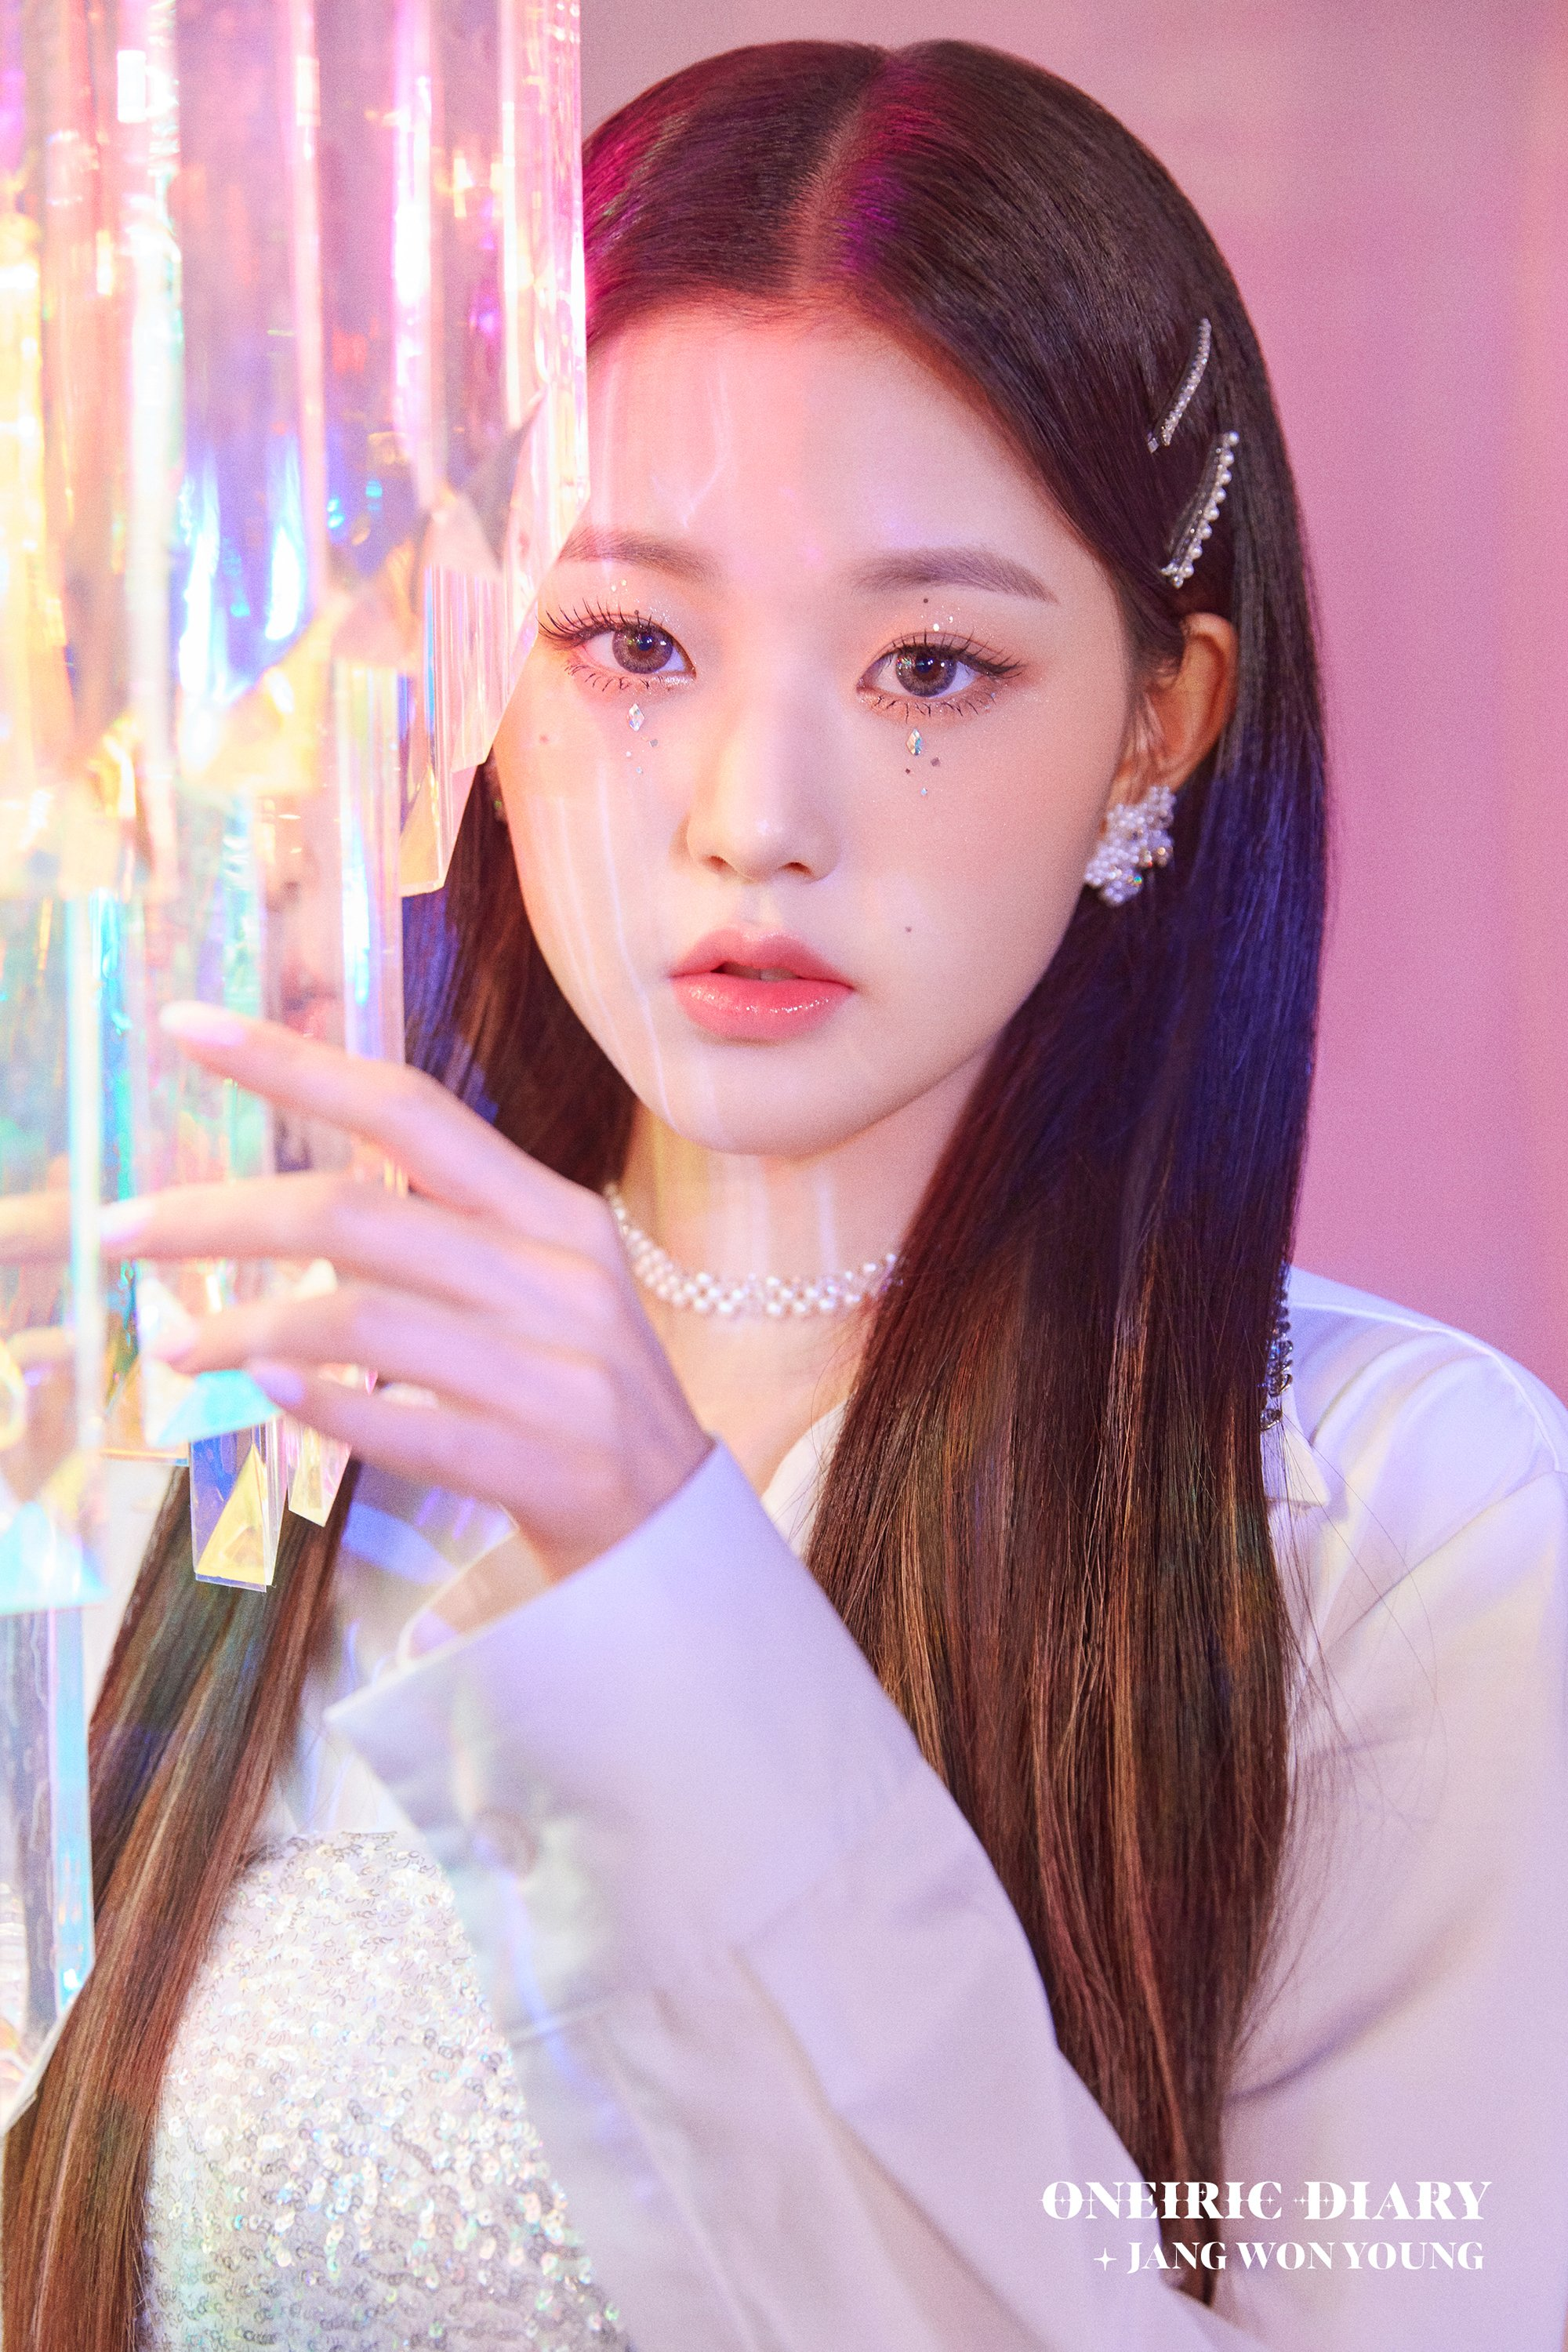 KPOP] IZ*ONE Oneiric Diary OFFICIAL PHOTO3